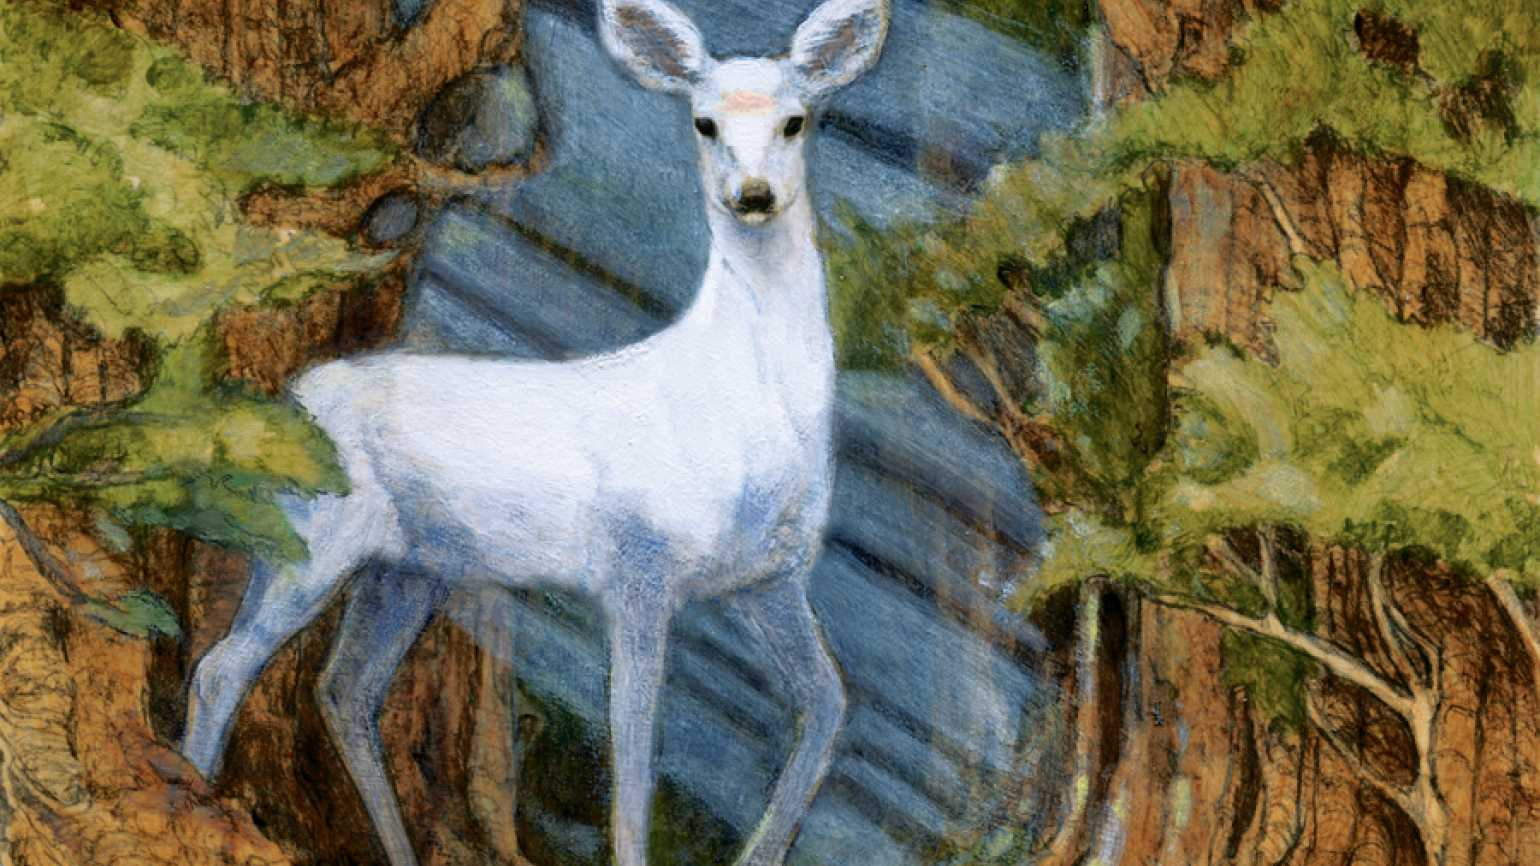 An artist's rendering of a white dear